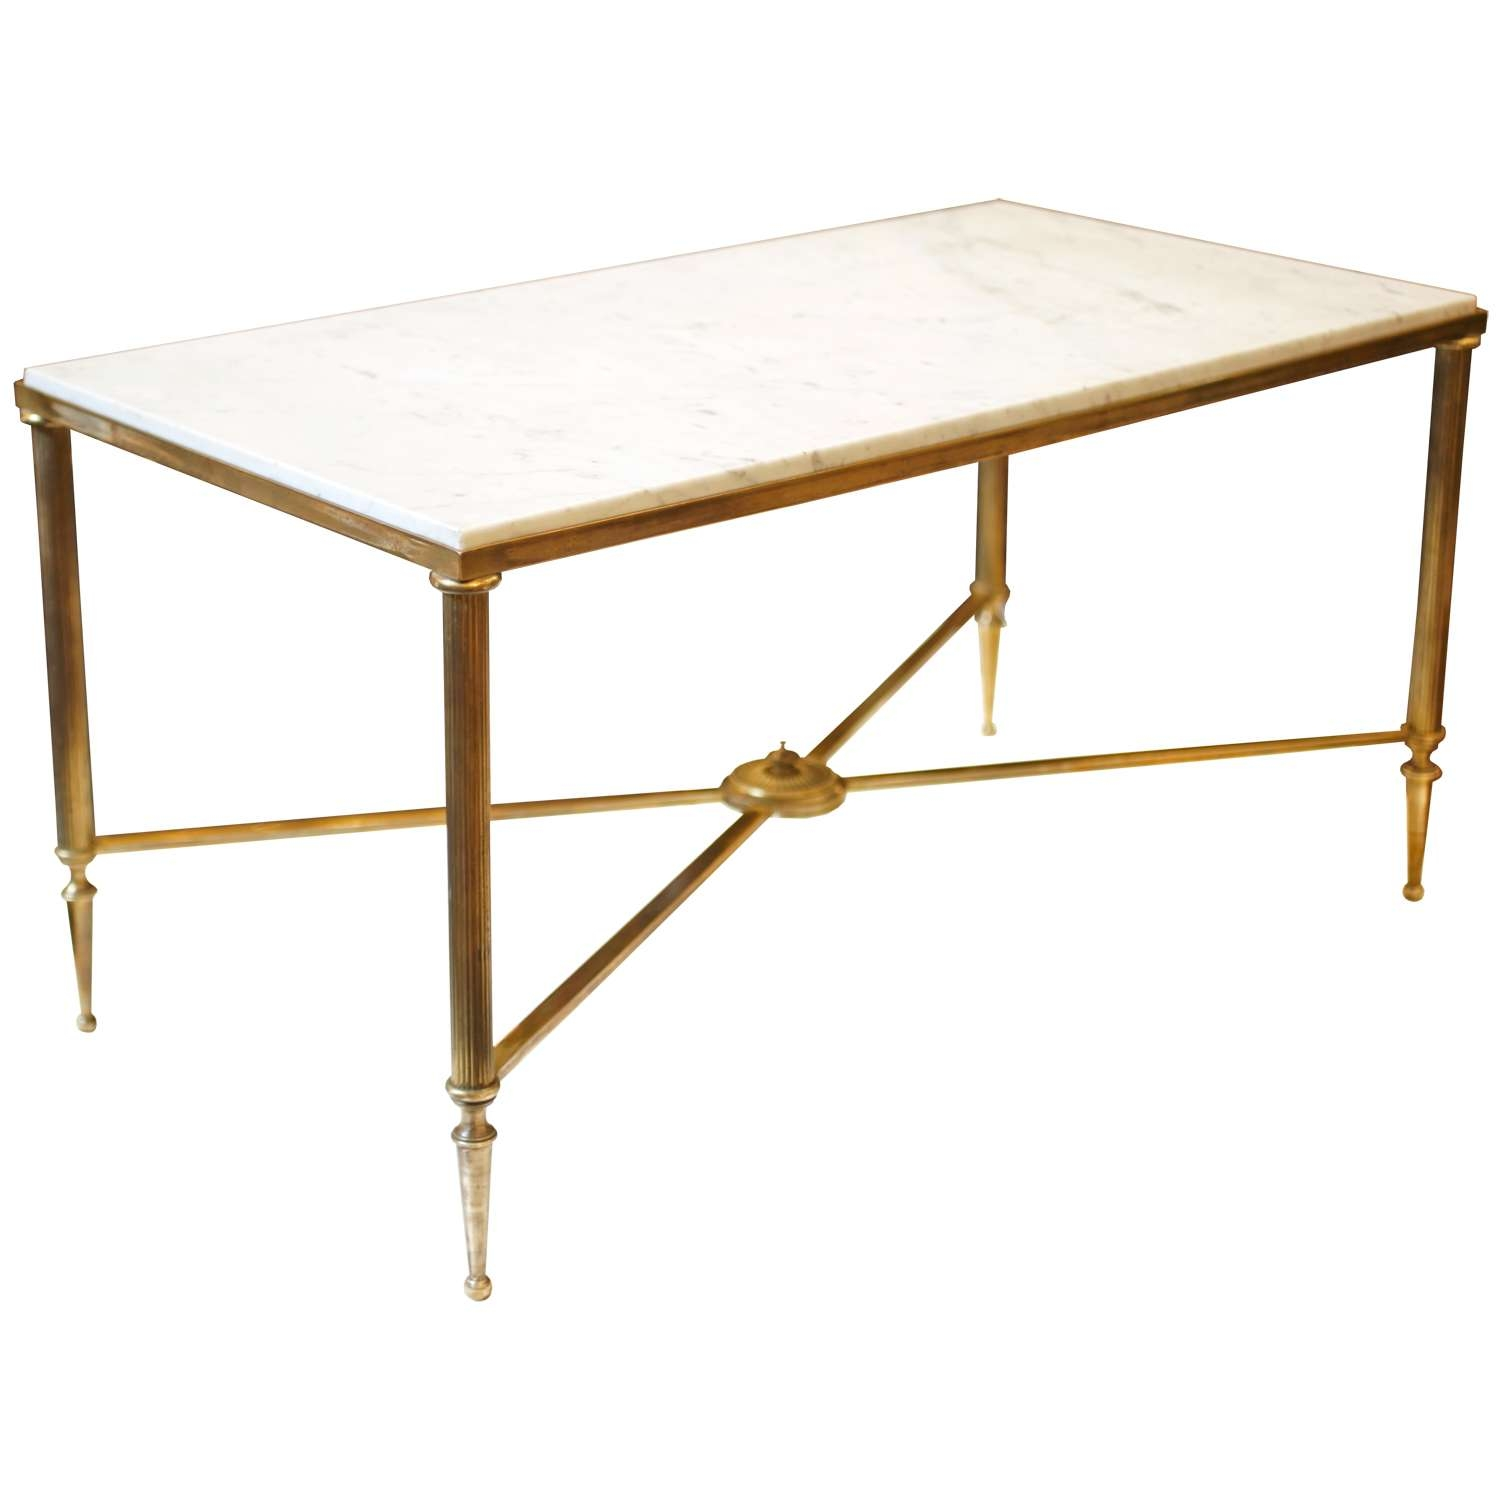 Coffee Tables : Brass Coffee Table With Glass Top Uk Base Round Regarding Popular Bronze And Glass Coffee Tables (View 6 of 20)